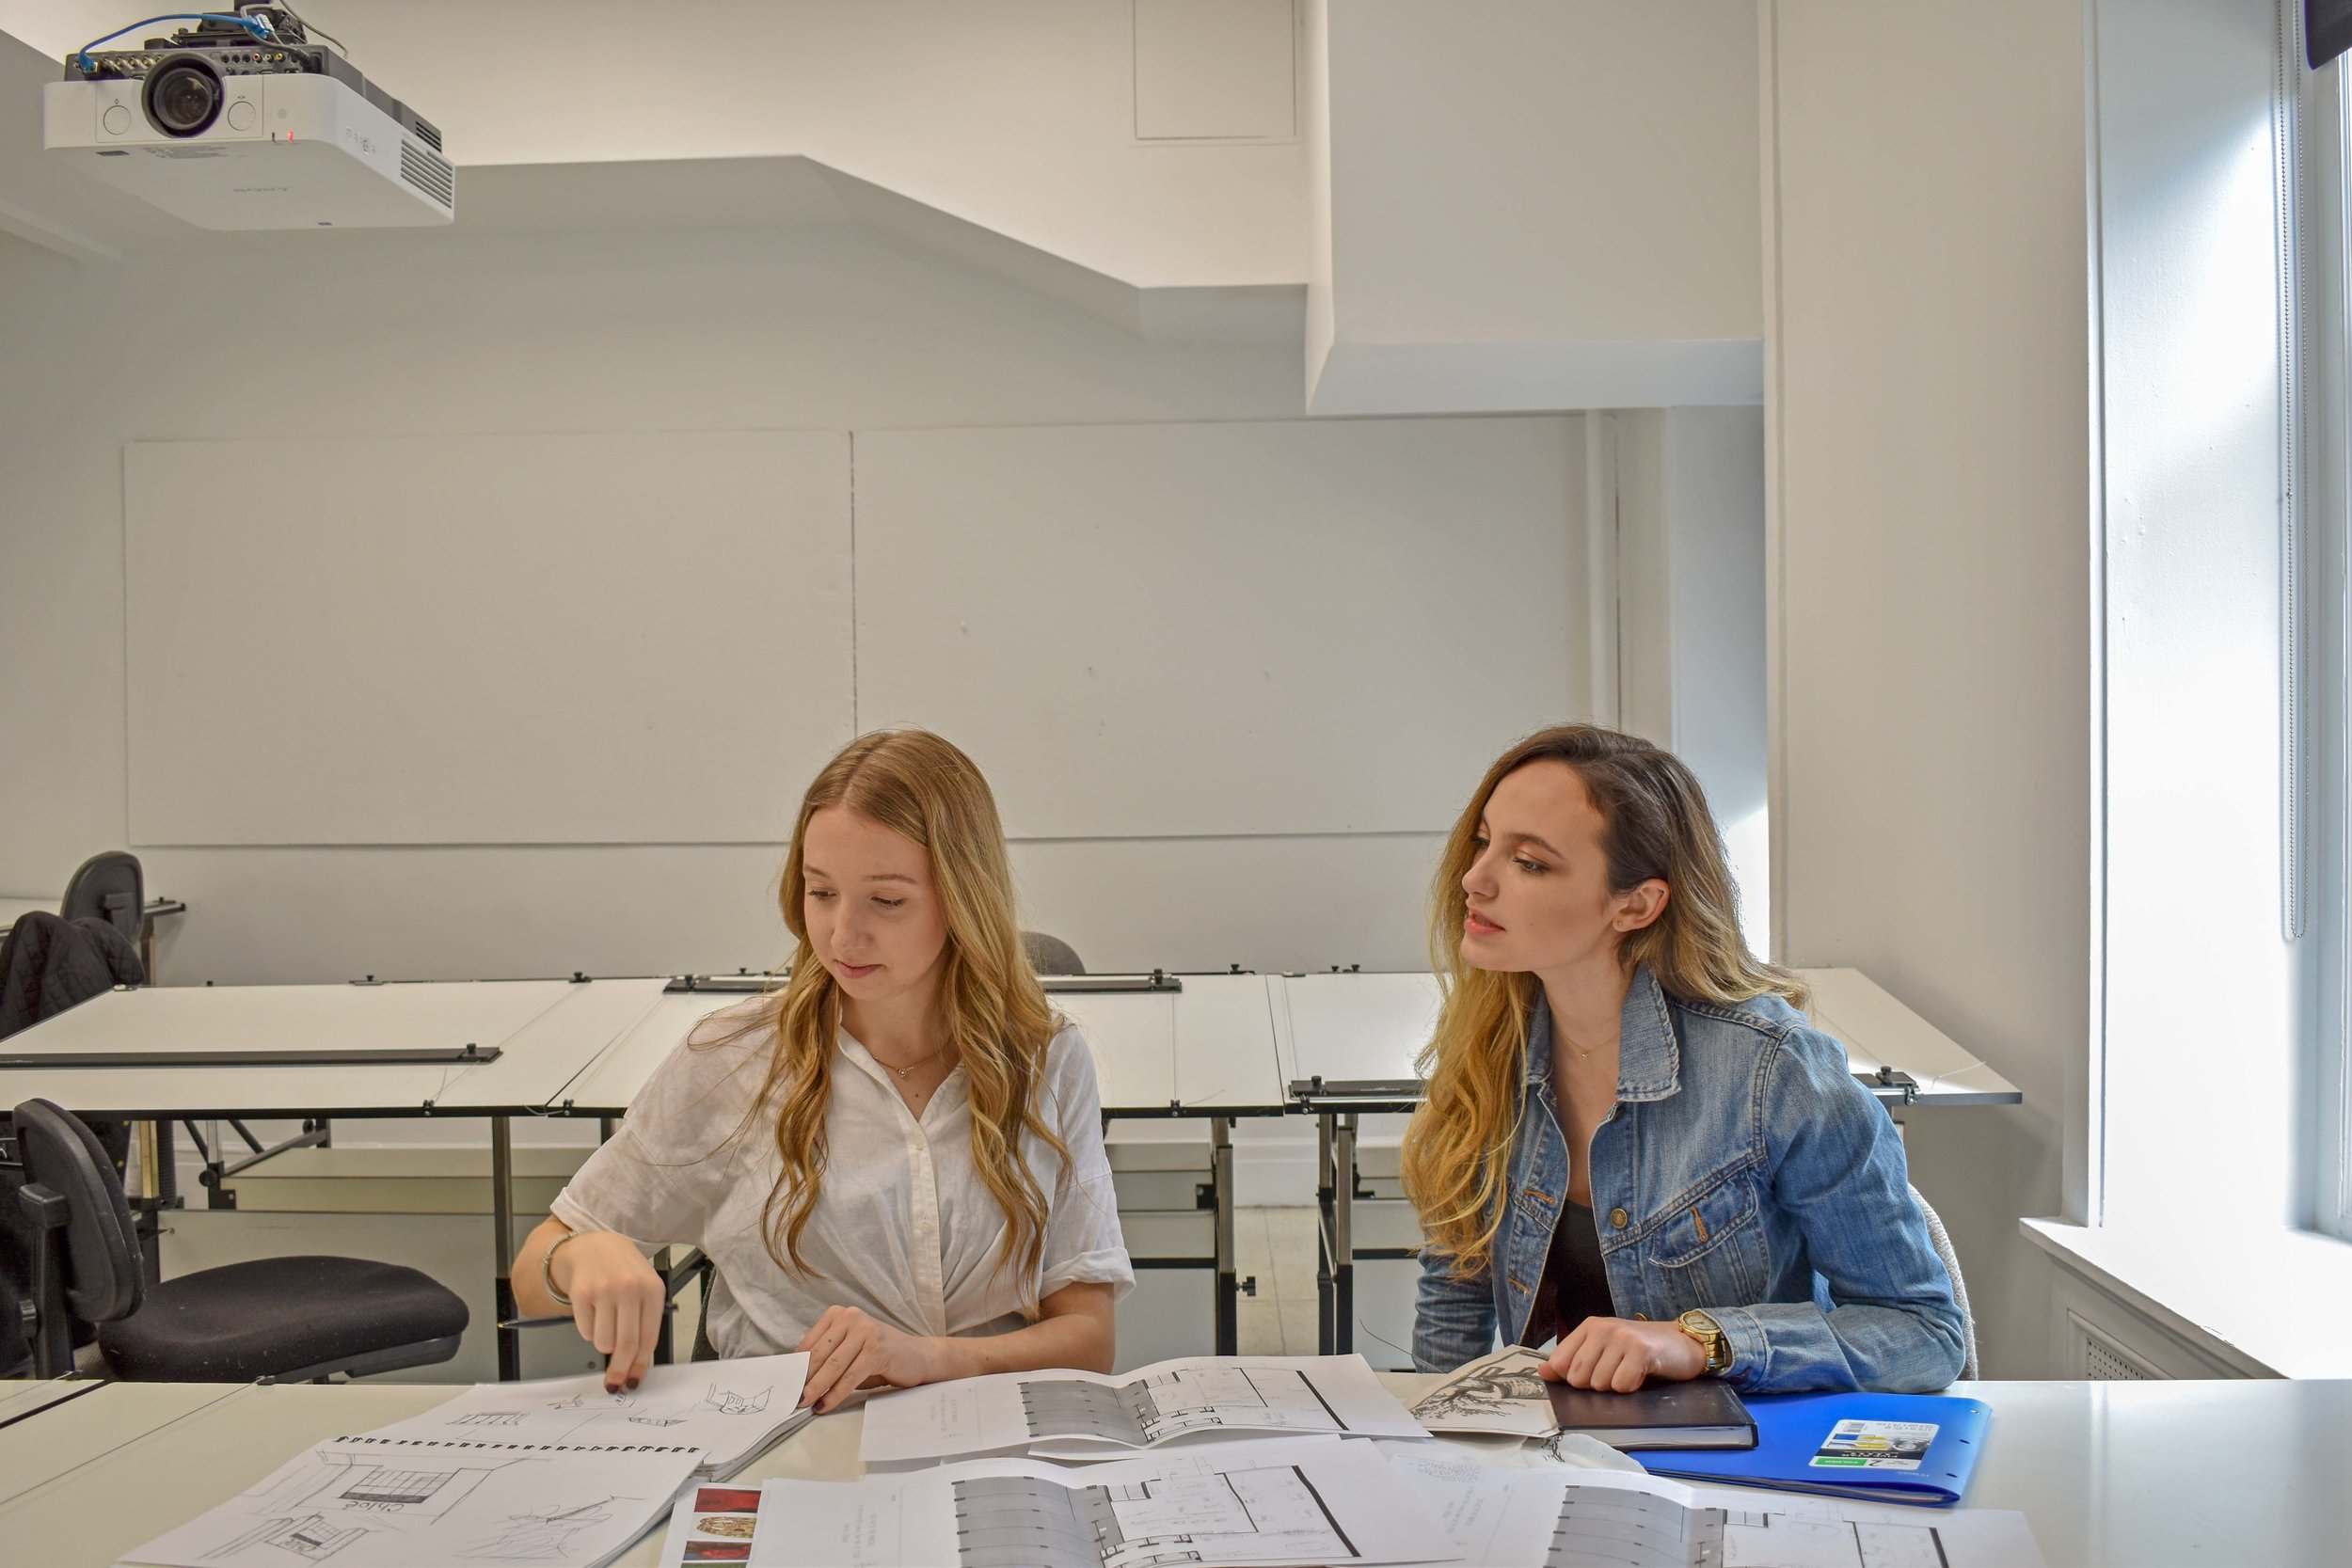 Admissions Requirements New York School Of Interior Design